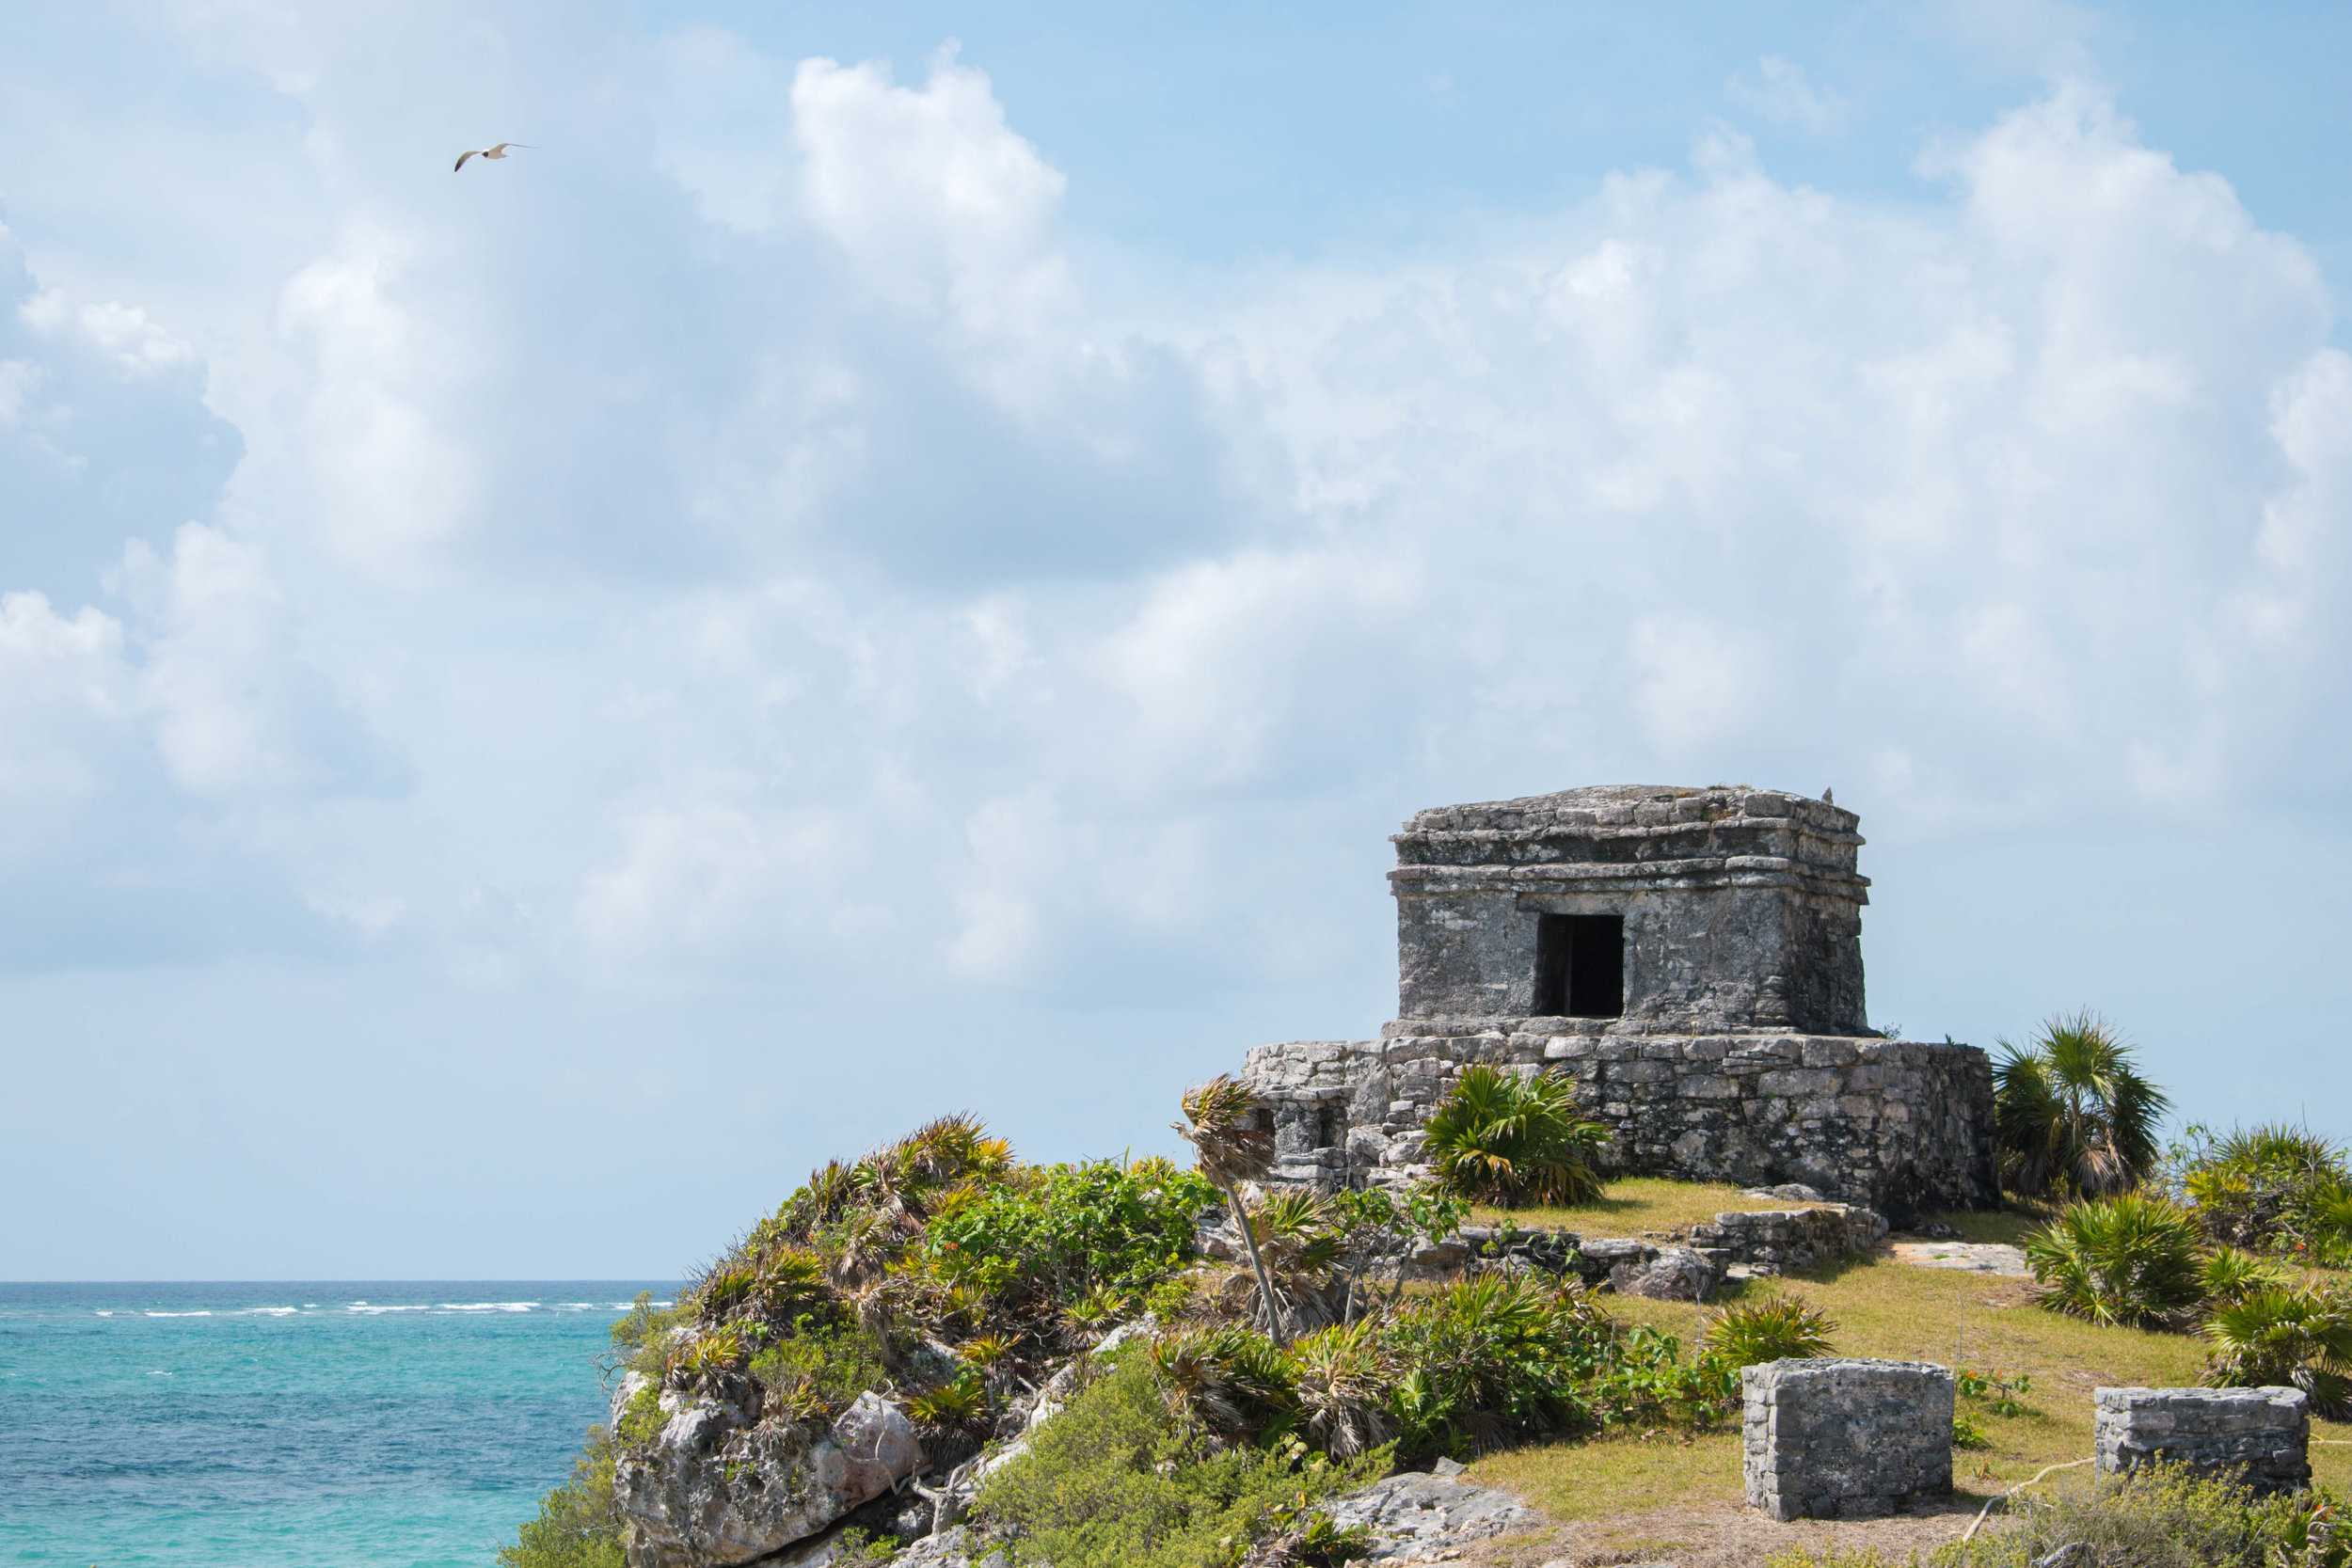 An Idyllic Location For A Mayan Ruin, Tulum in Mexico